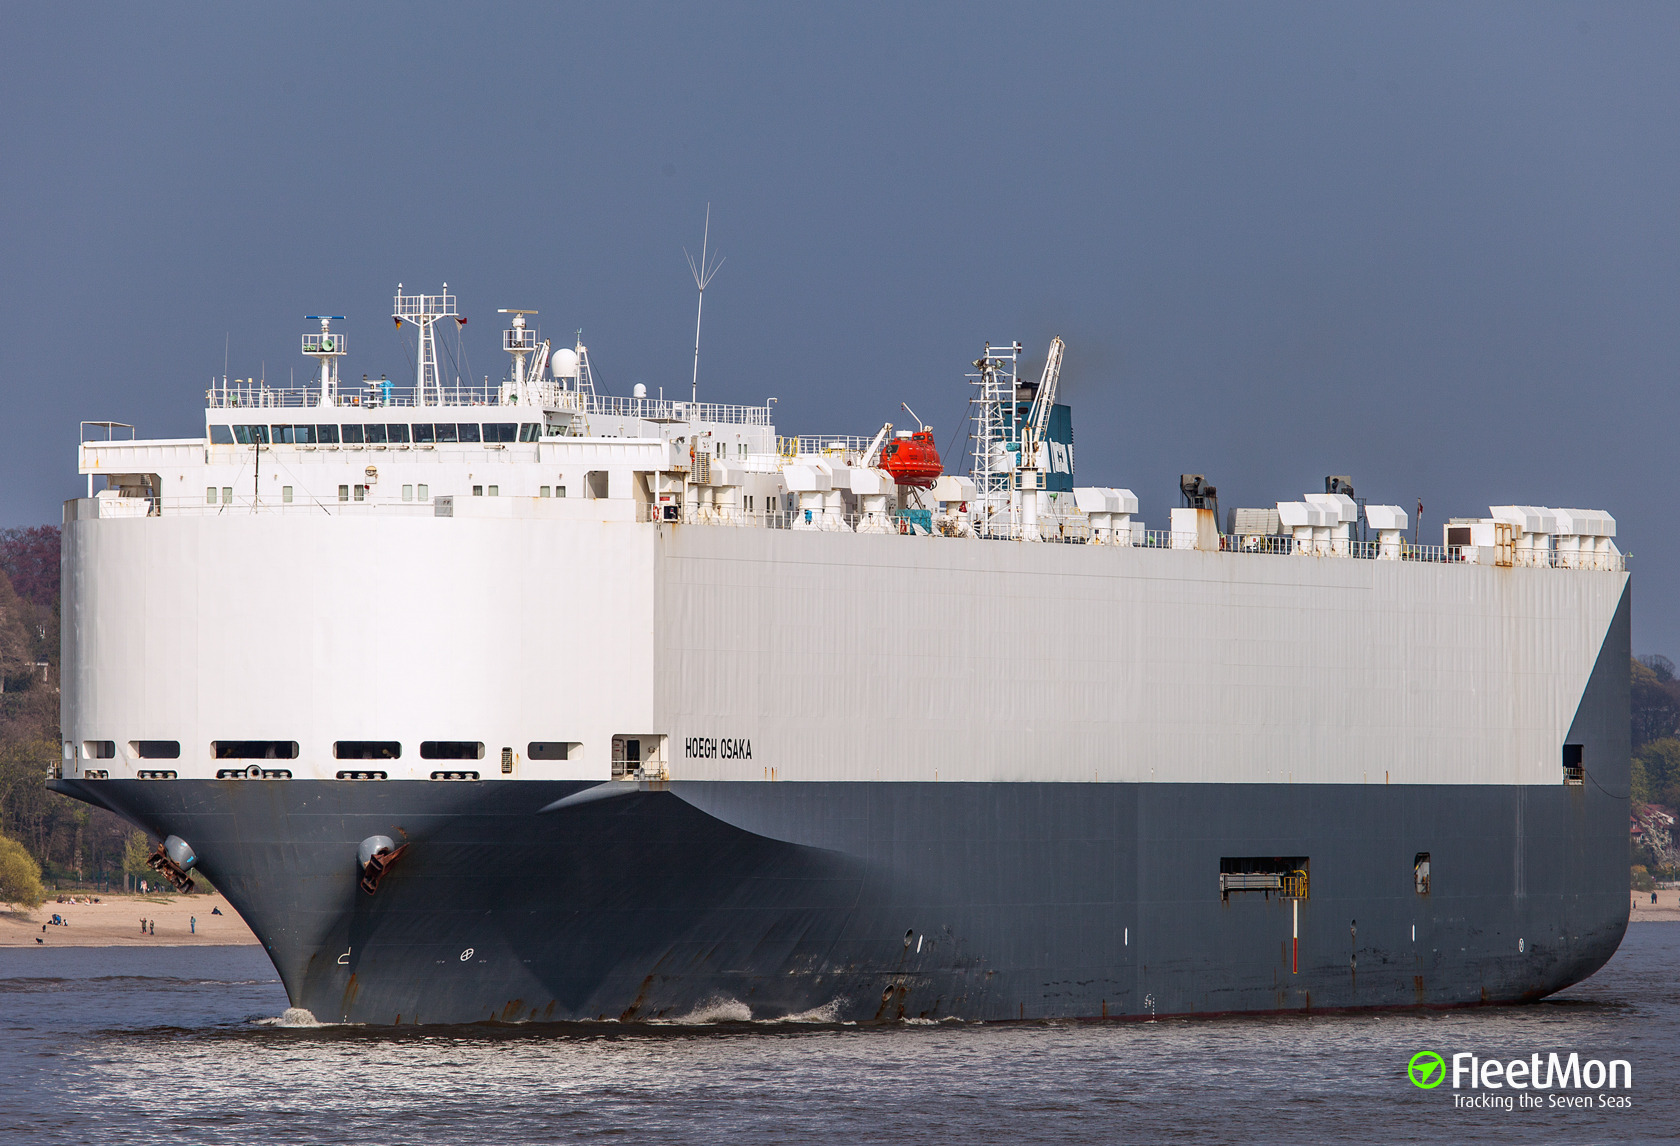 Car carrier Hoegh Osaka refloated